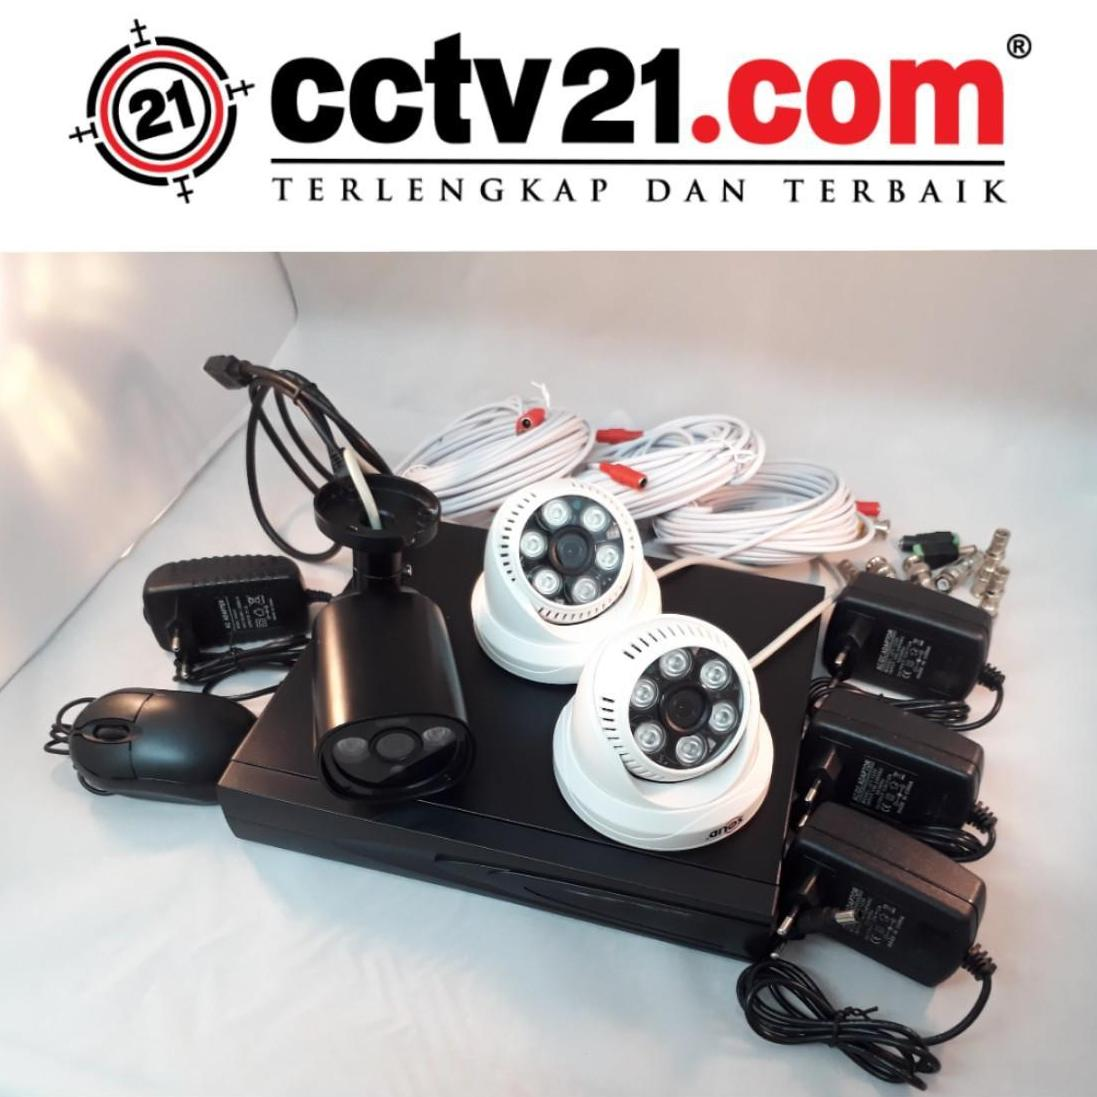 PROMO PAKET  CAMERA 2 INDOOR - 1 OUTDOOR 960P - DVR HD 4 CH